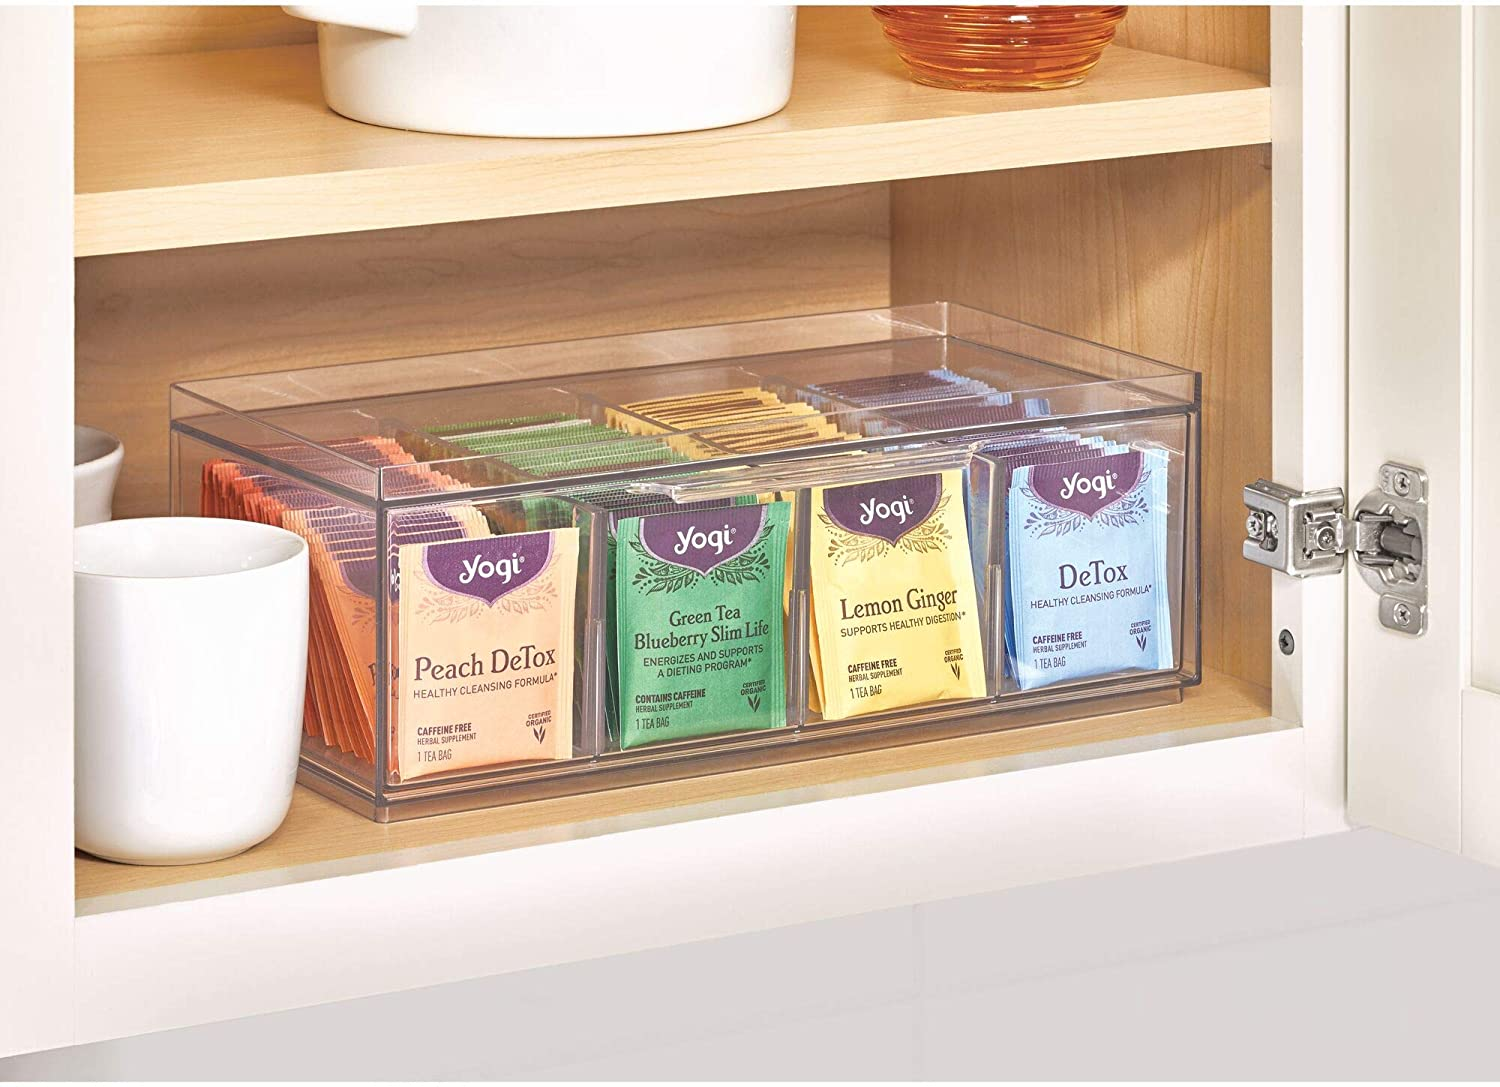 12.59 x 6.23 x 4.57 iDesign Crisp BPA-Free Plastic Stackable Tea Packet Storage Organizer Drawer with Lid for Kitchen Cabinets and Countertops Clear